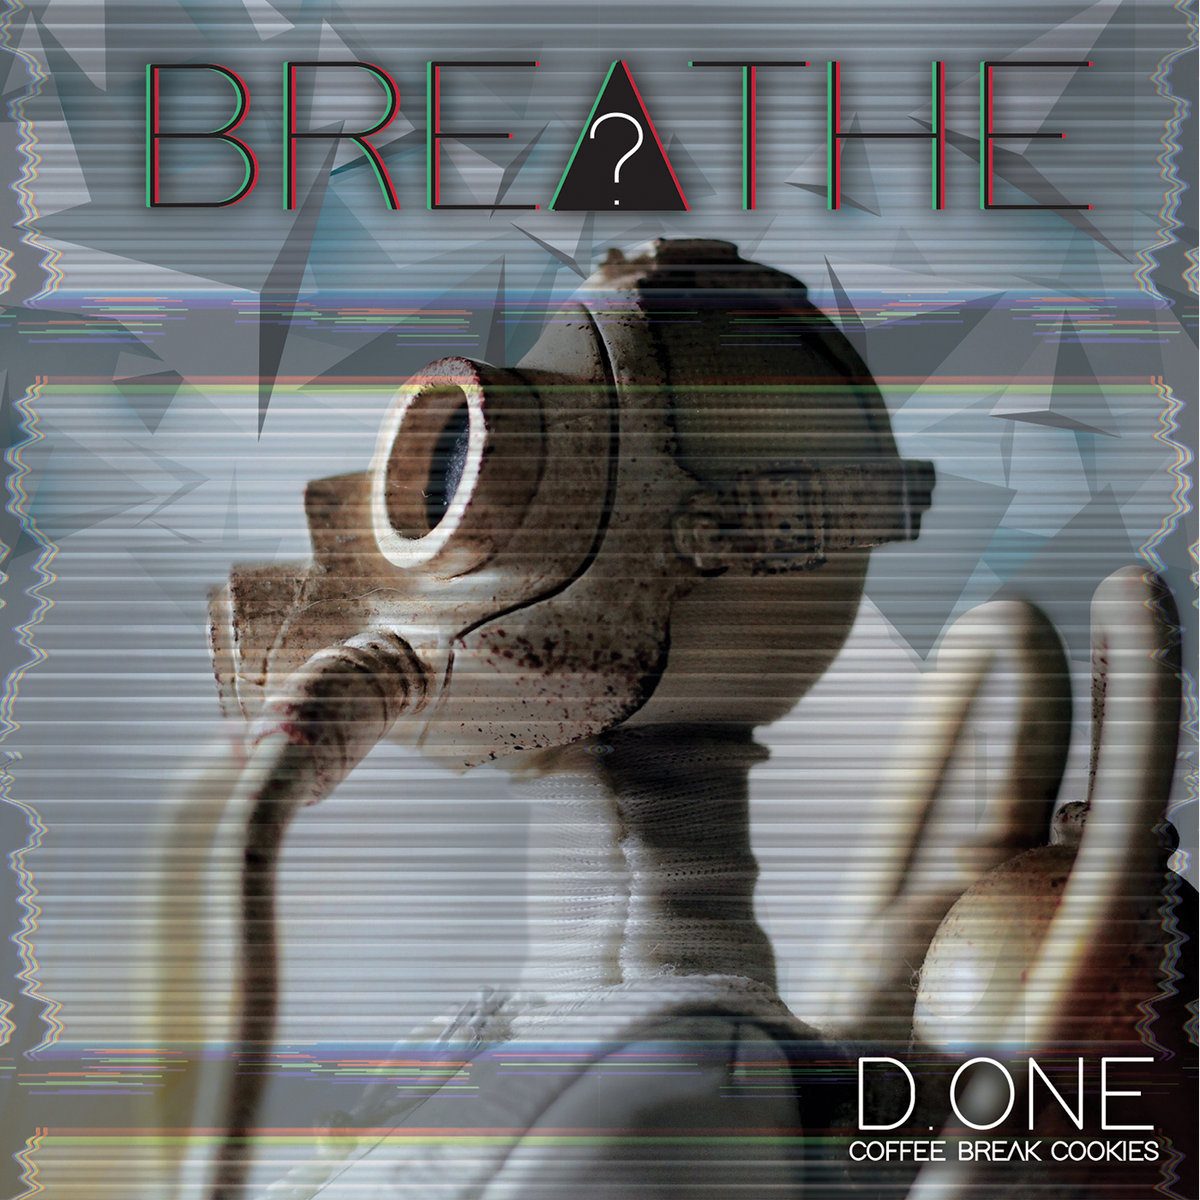 Coffee Break Cookies - D.one - Breath (L.P.) (2017)